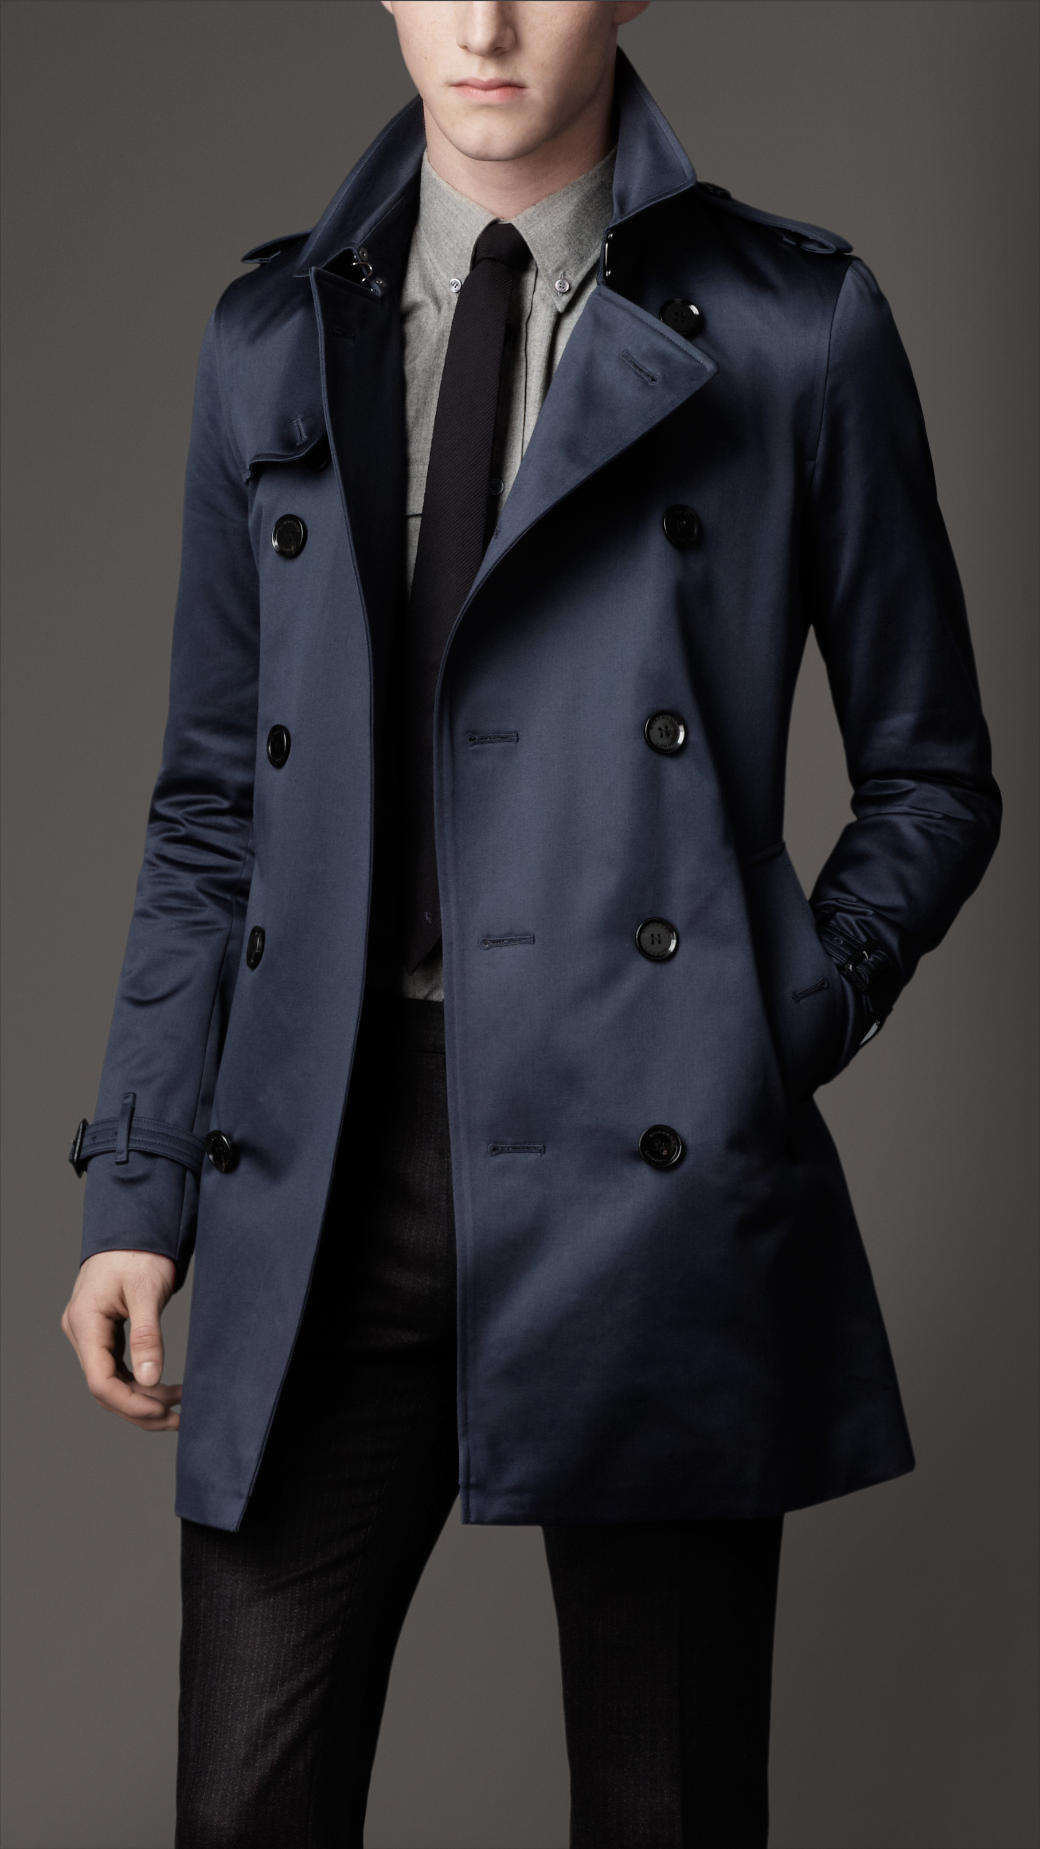 Men S Suits On Pinterest: Burberry Midlength Heritage Cotton Trench Coat In Blue For